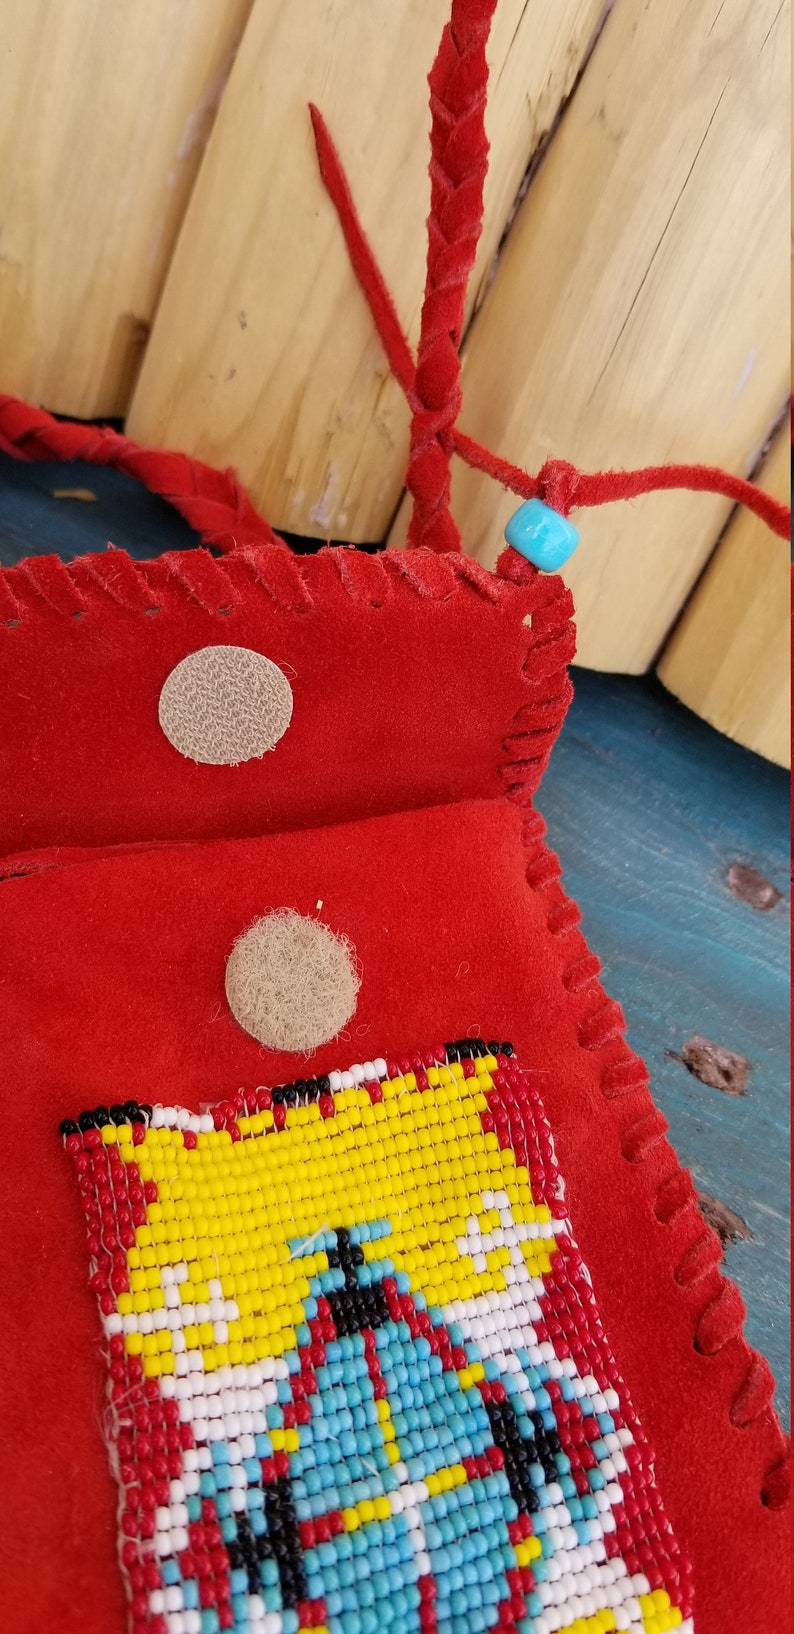 Handmade Suede Beaded pouch purse